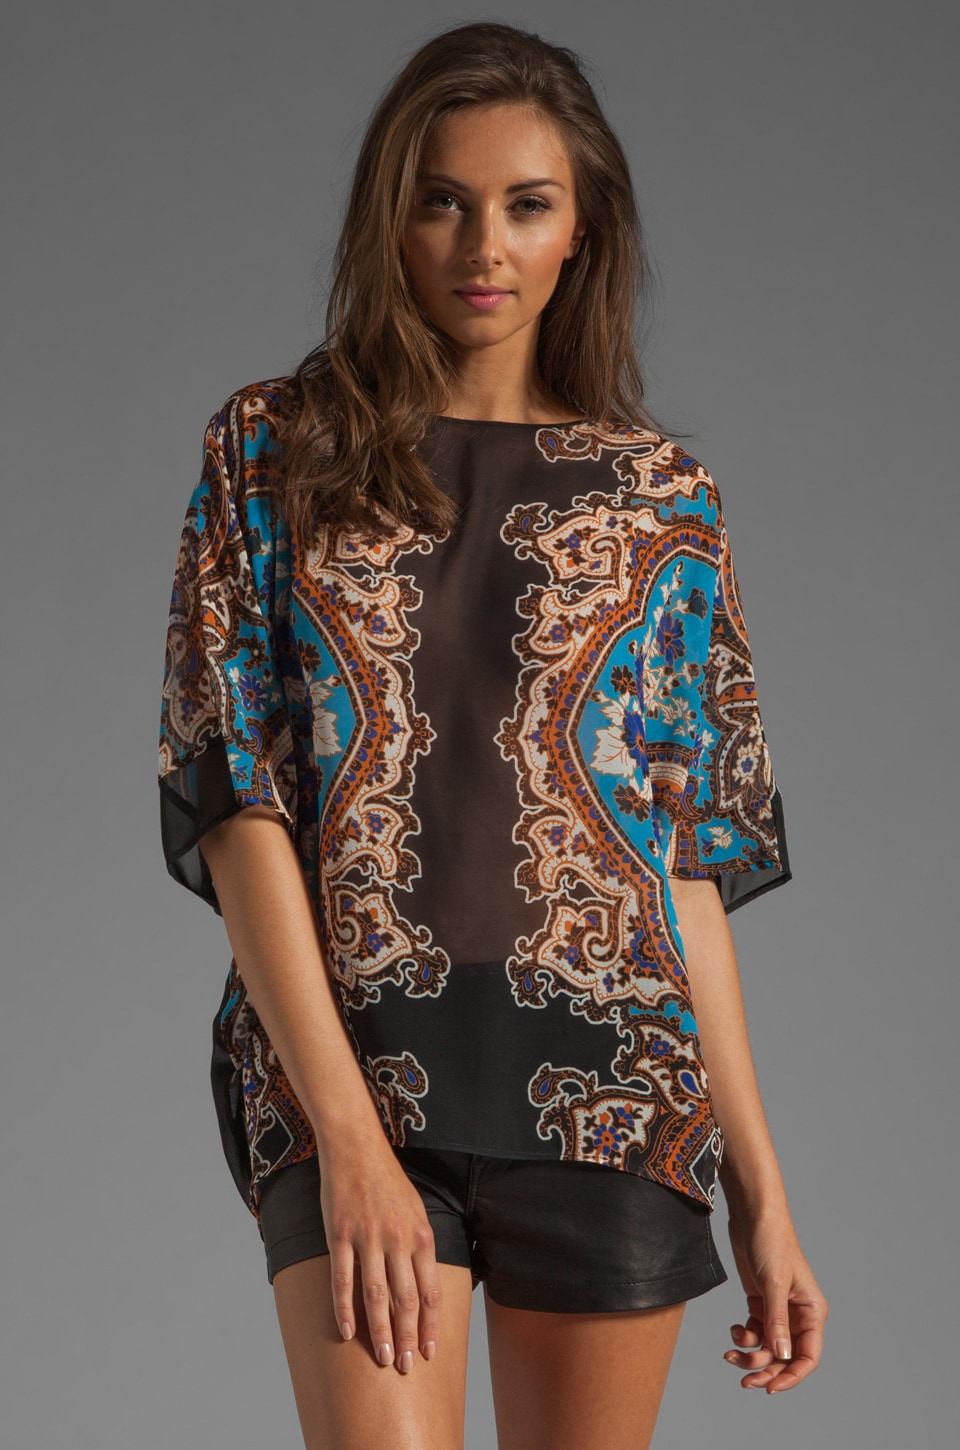 Clover Canyon Holiday Paisley Blouse in Multi